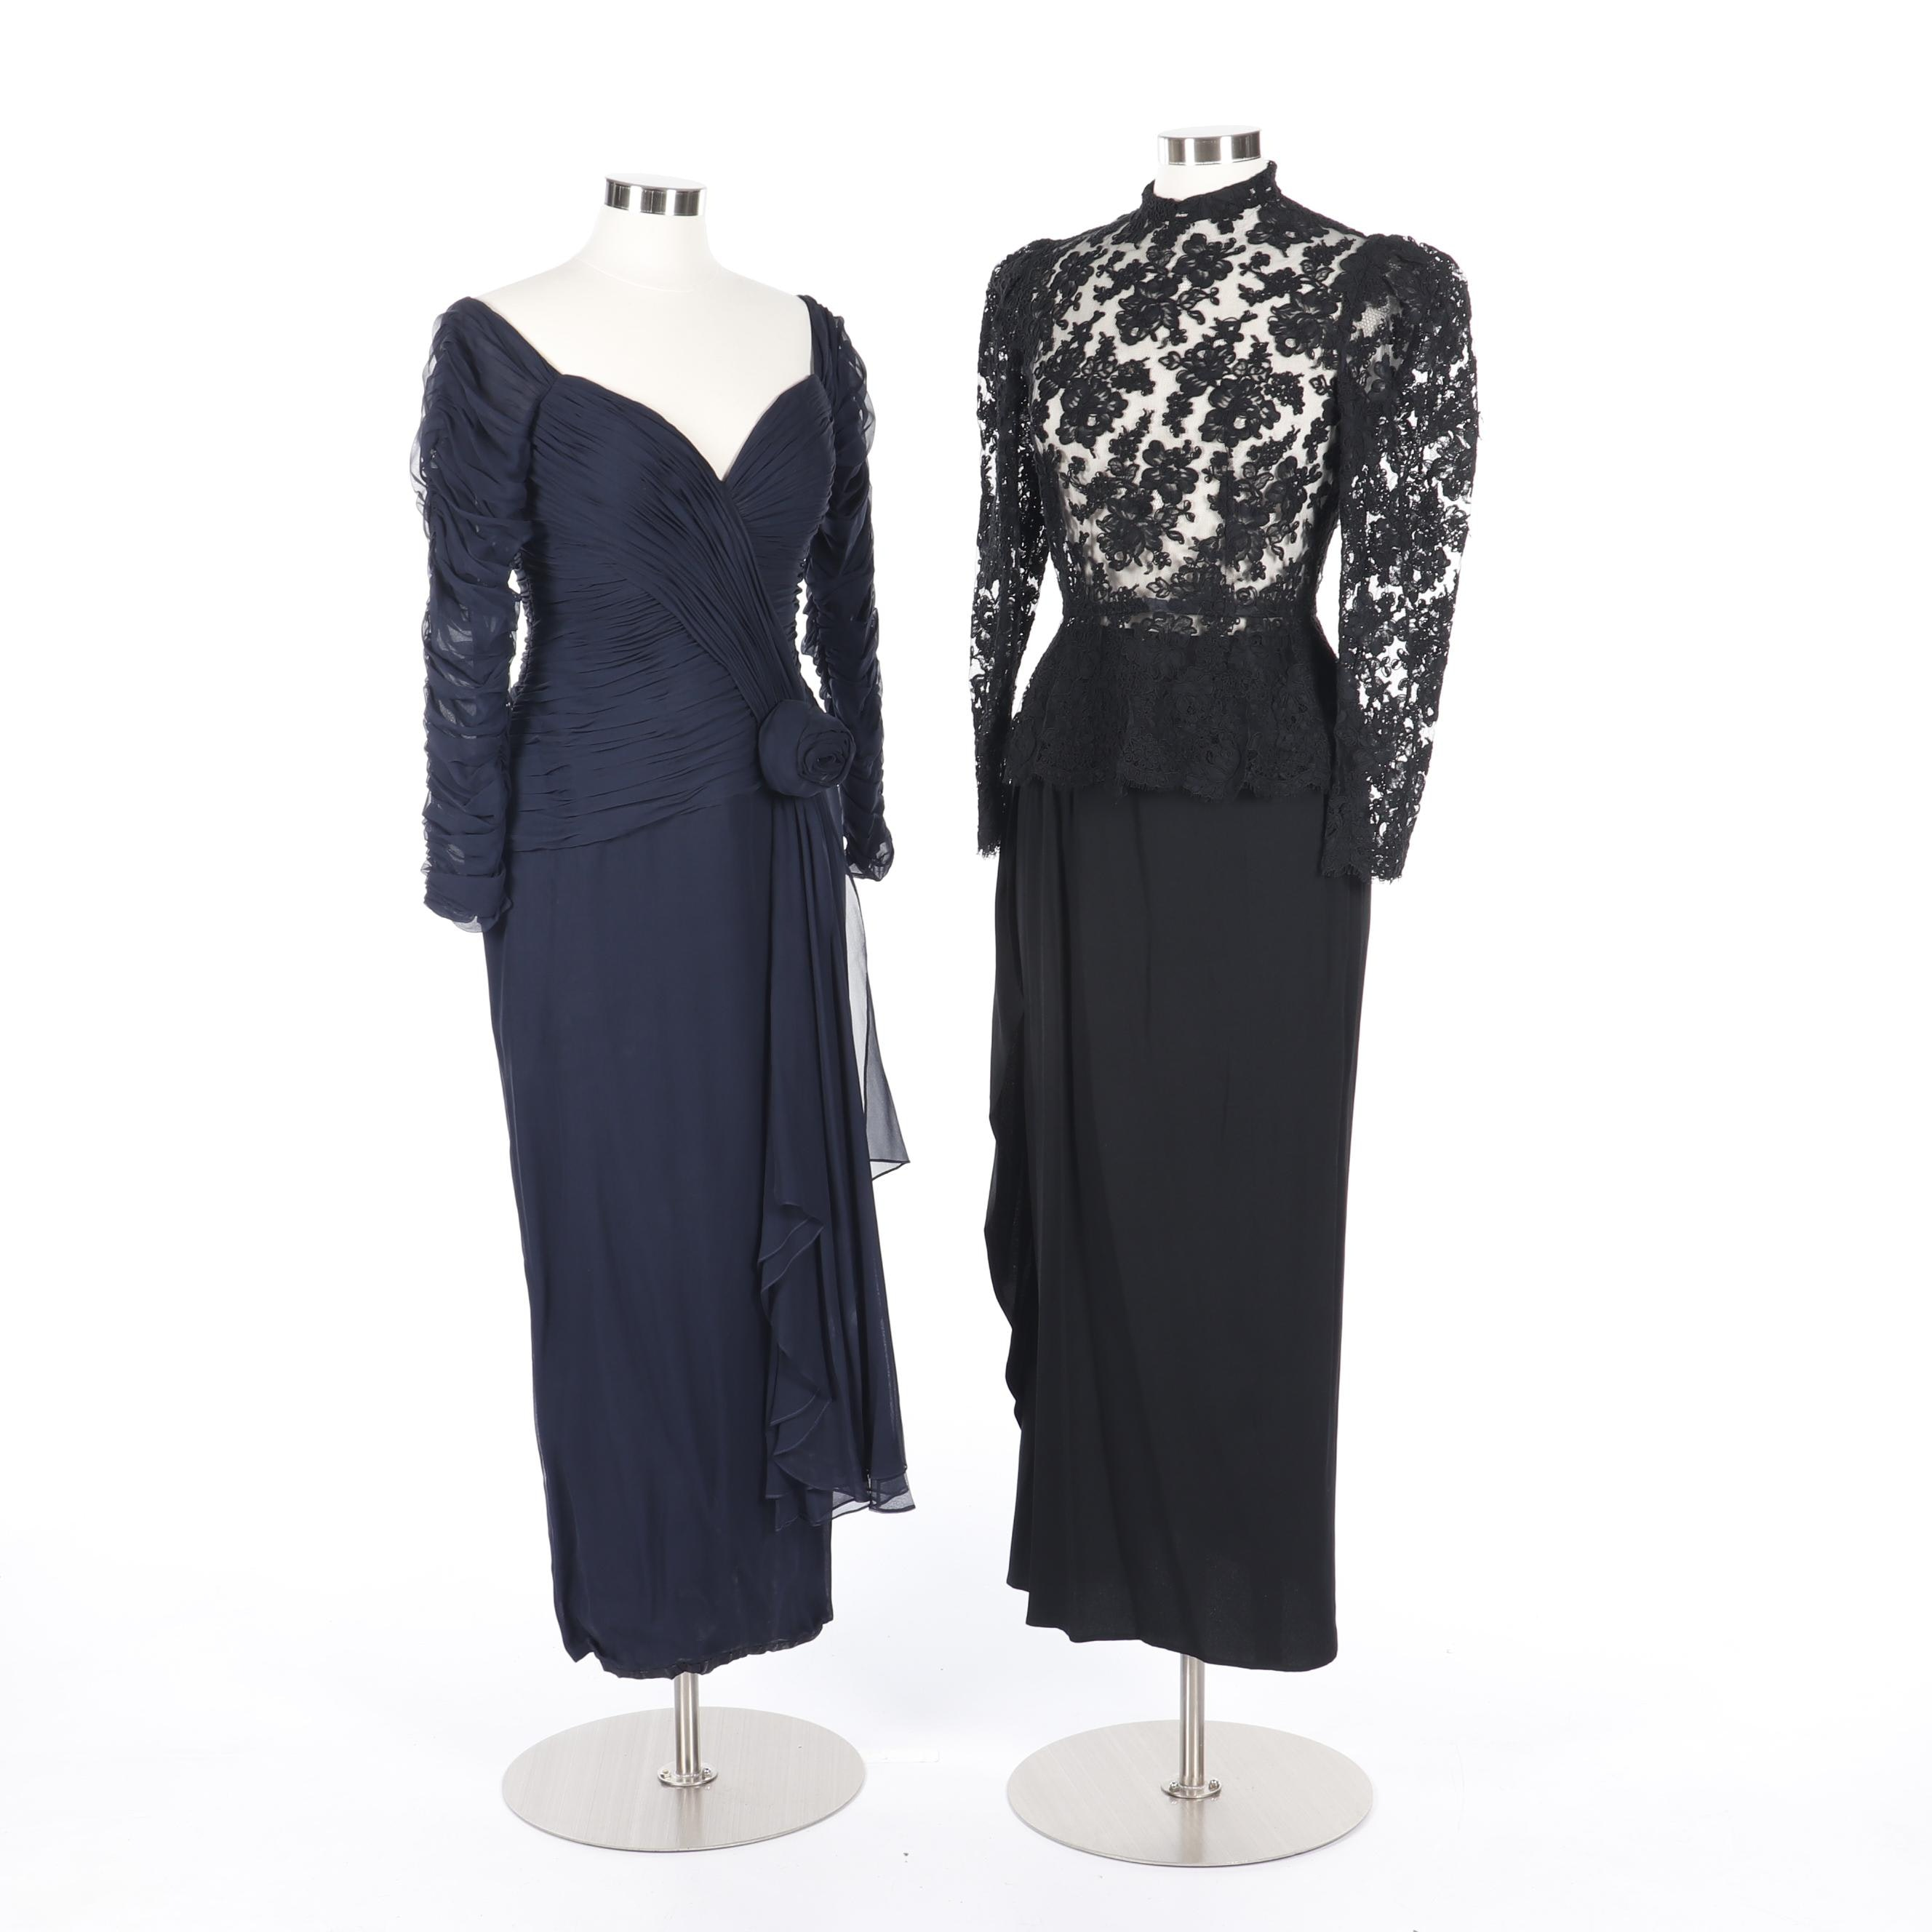 Navy Blue Plissé Chiffon Evening Dress and Black Lace Blouse with Long Skirt